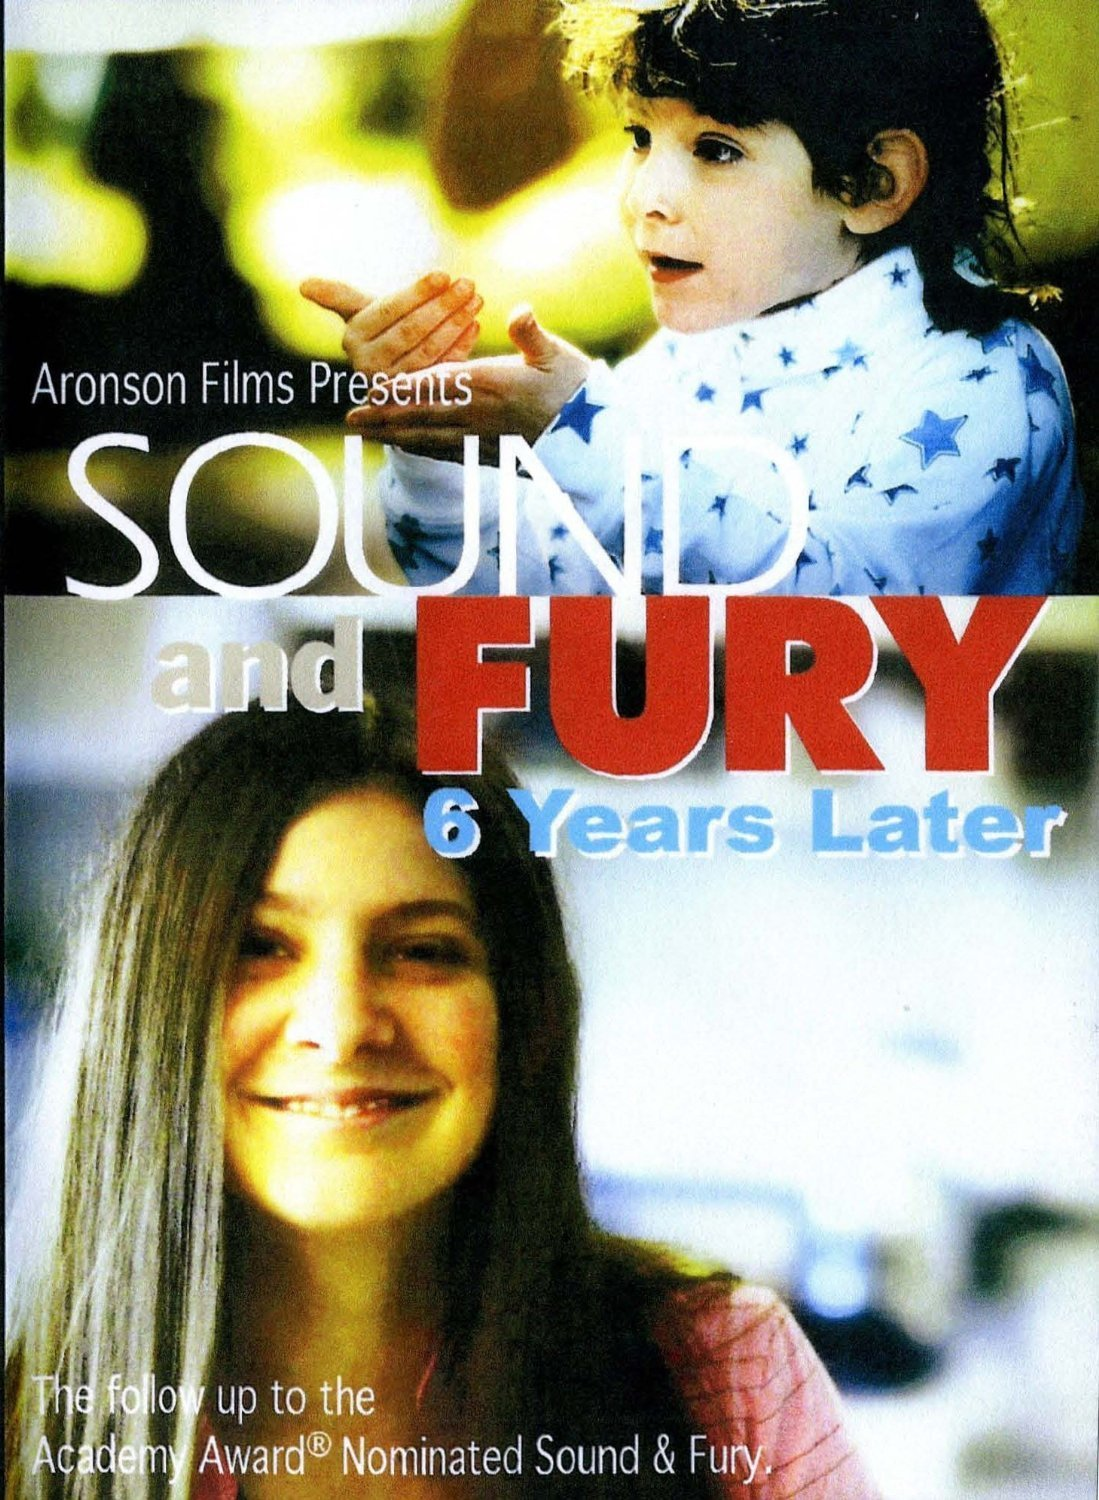 sound and fury documentary essay Free the sound and the fury papers, essays  the significance of sound in film - movies ultimately engage two of the main senses, vision and hearing.